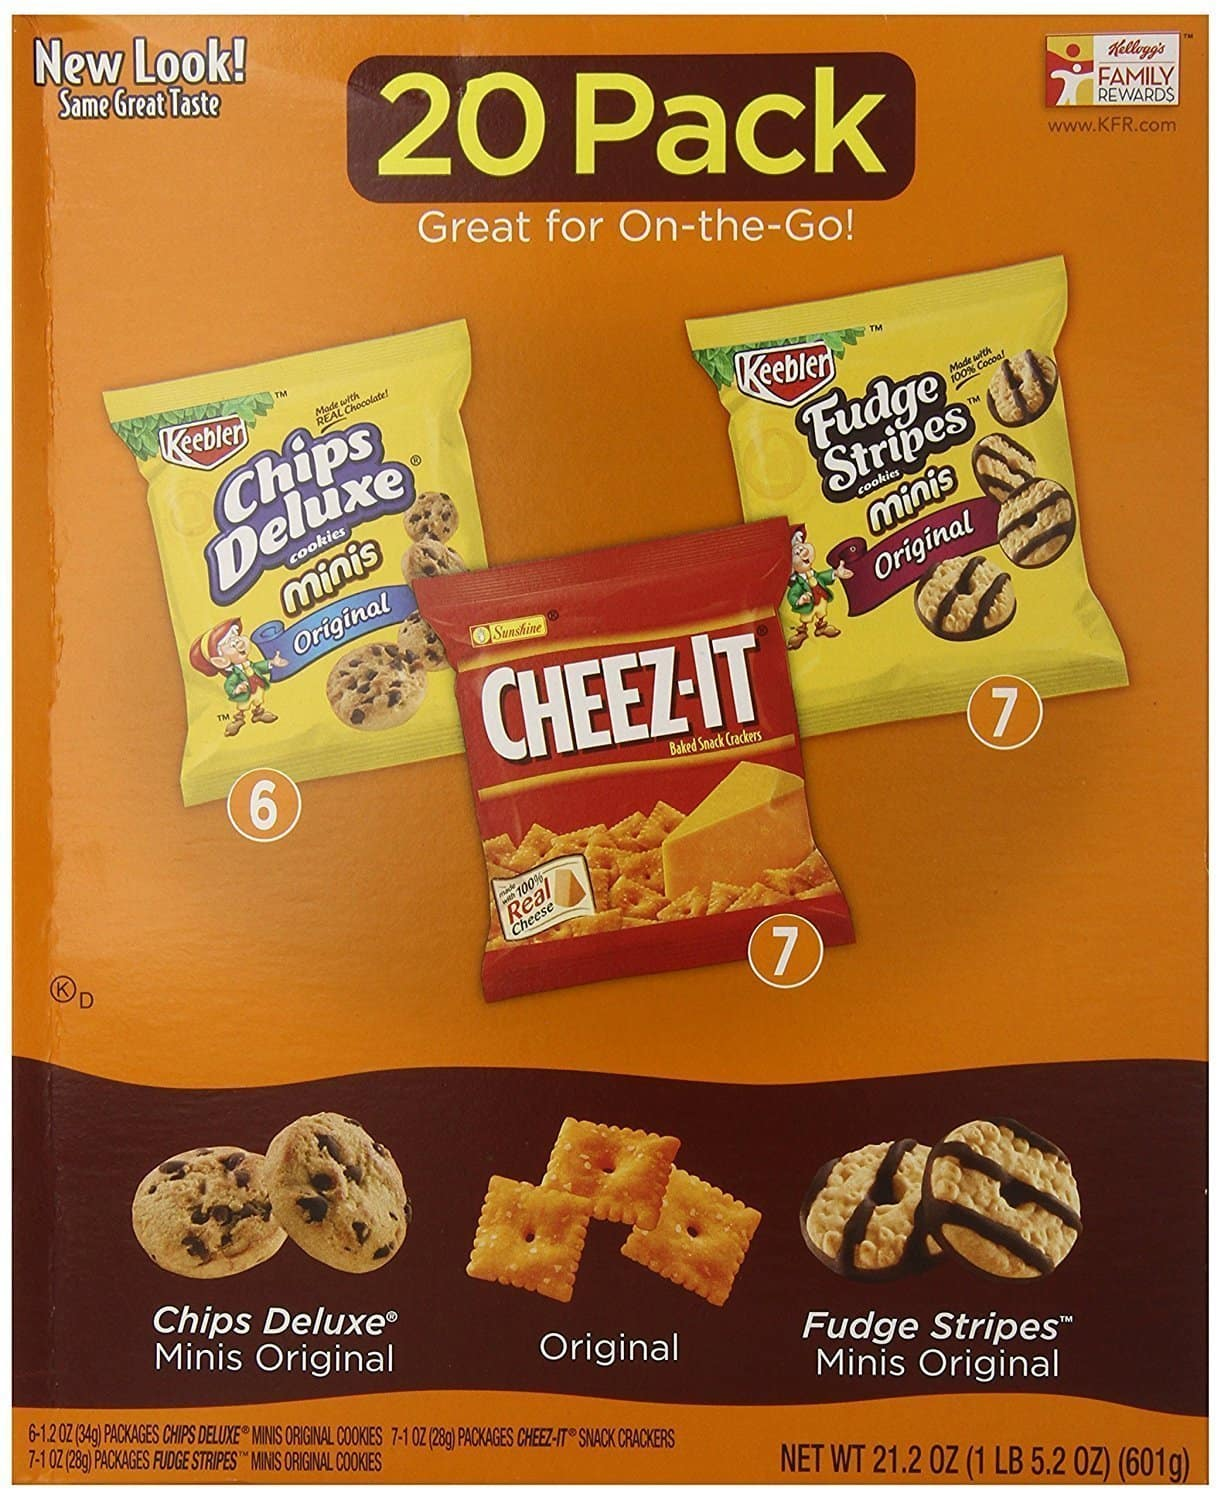 Chips Deluxe/Cheez-It/Fudge Stripes Variety Pack 20 ct Bags -- $3.69 with 30% Coupon and 15% SnS